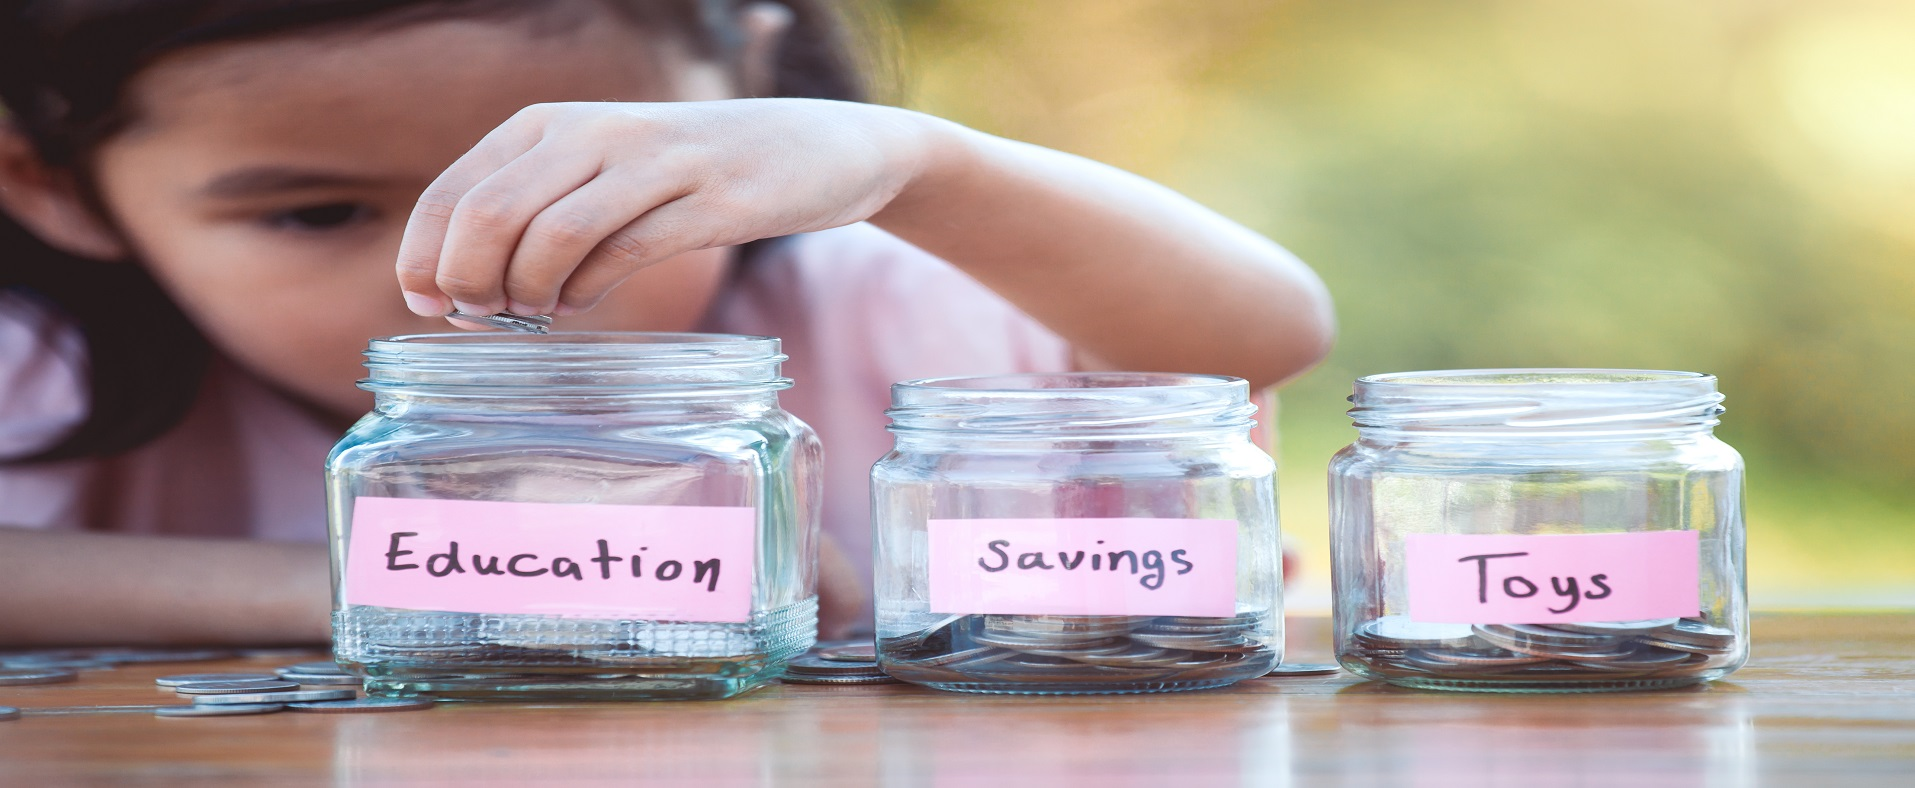 Ways to Teach Children Money Skills from a Young Age